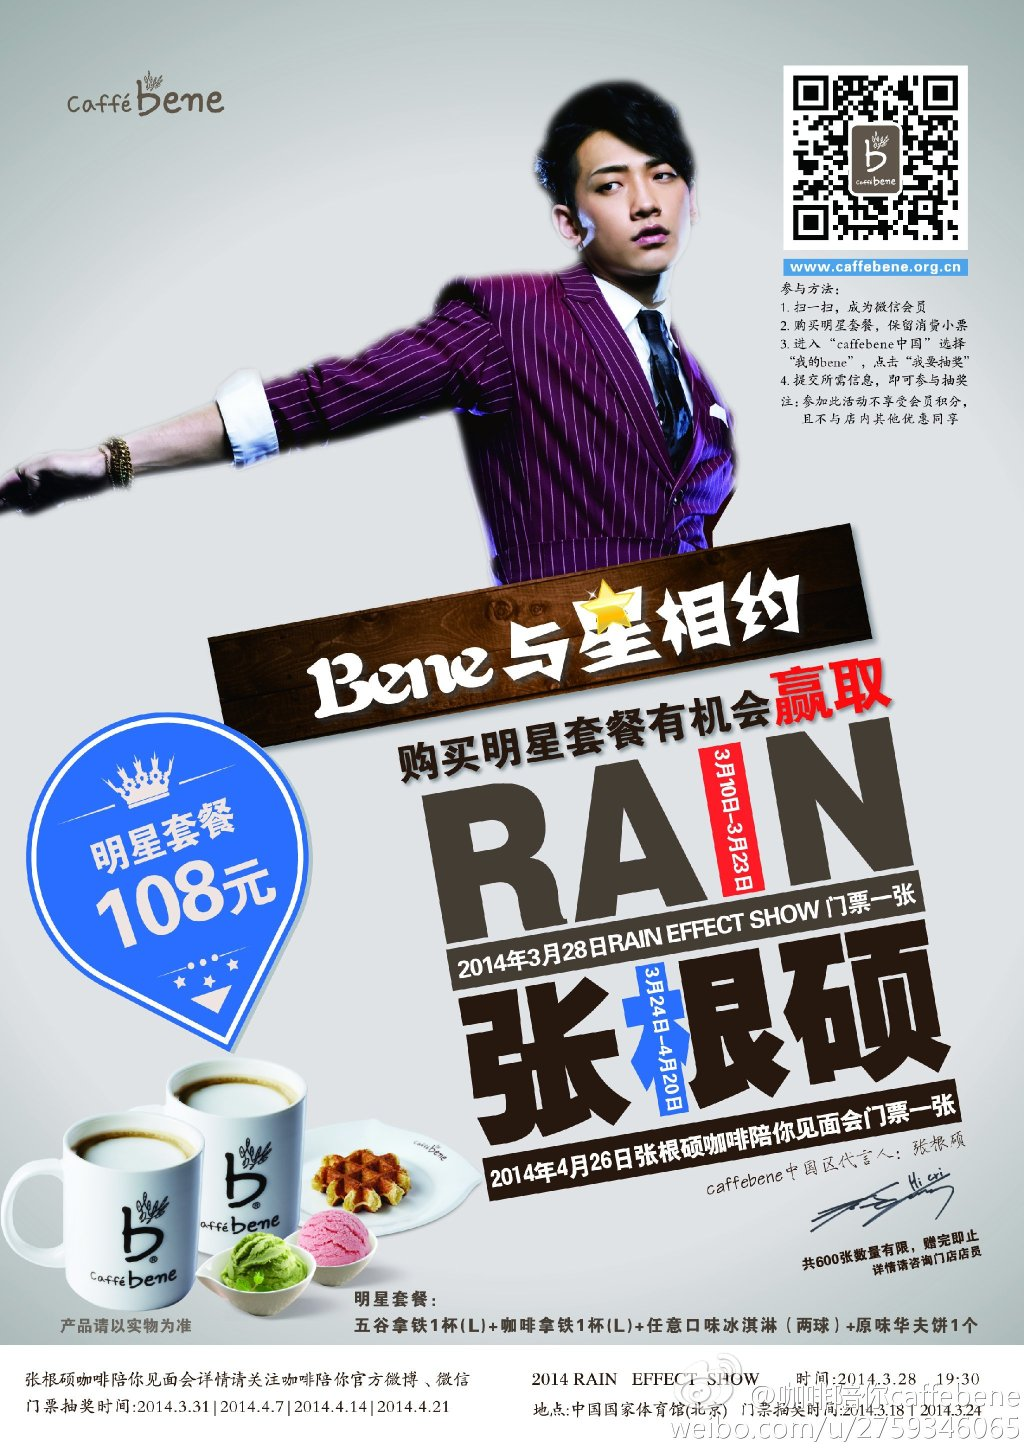 http://rain-cloud.co.kr/files/board/a4784791gw1eecx7sxlgfj21kw28g1ck.jpg